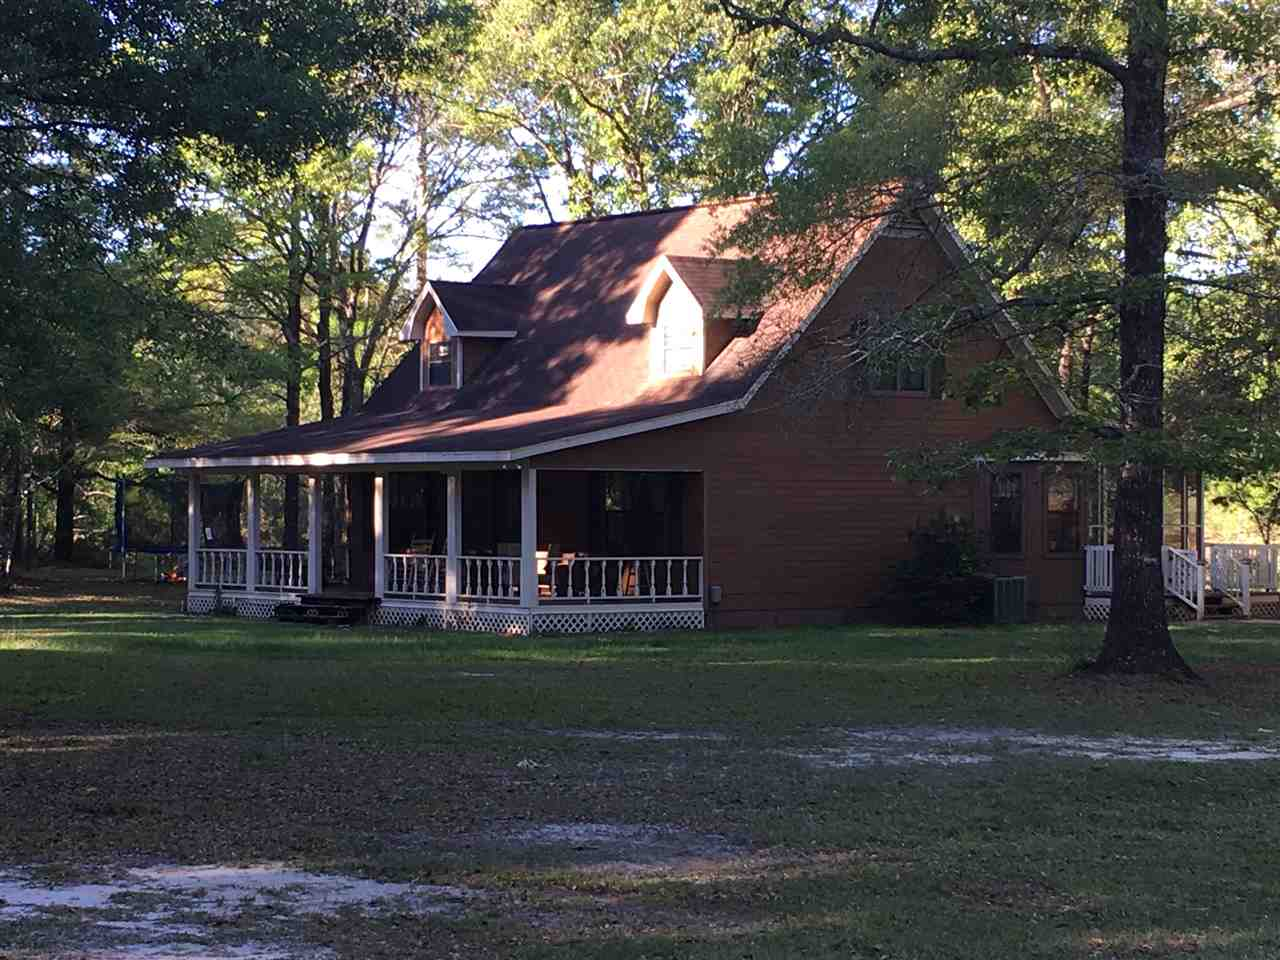 2037 IRON BRIDGE ROAD, SAMSON, AL, 36477 Photo 1